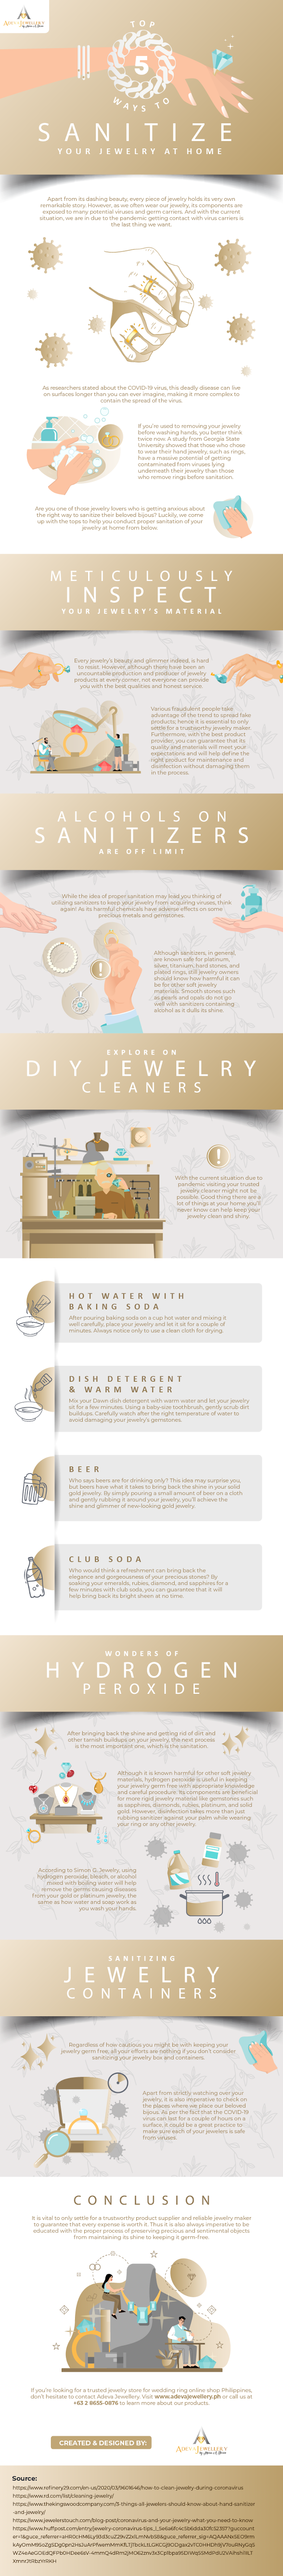 Top 5 Ways to Sanitize Your Jewelry at Home #infographic #Jewelry #Sanitize Your Jewelry #Pandemic